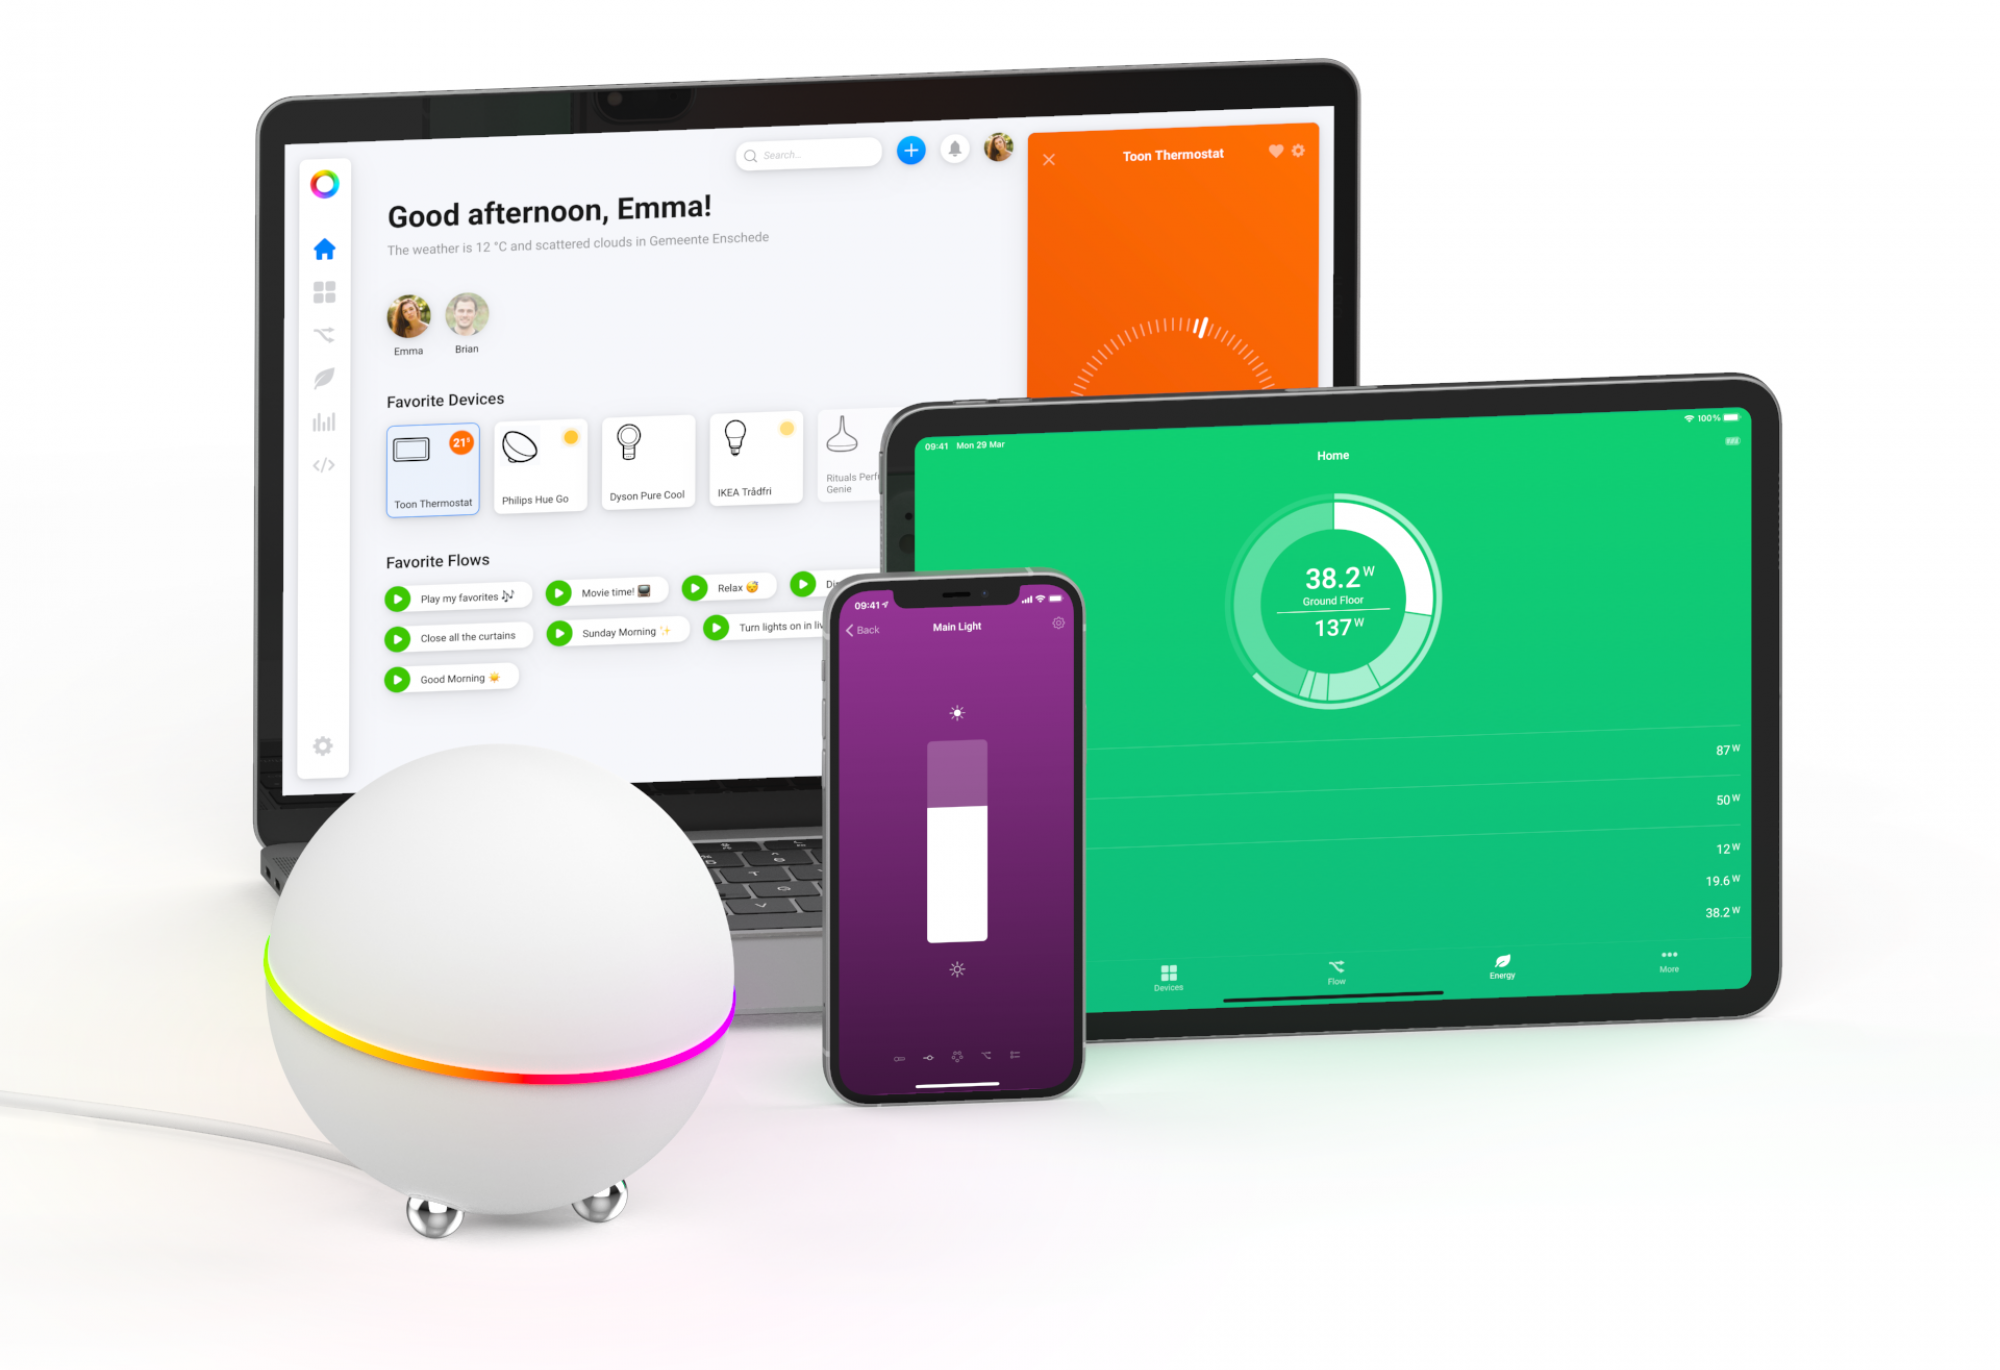 KNX smart home control on any device